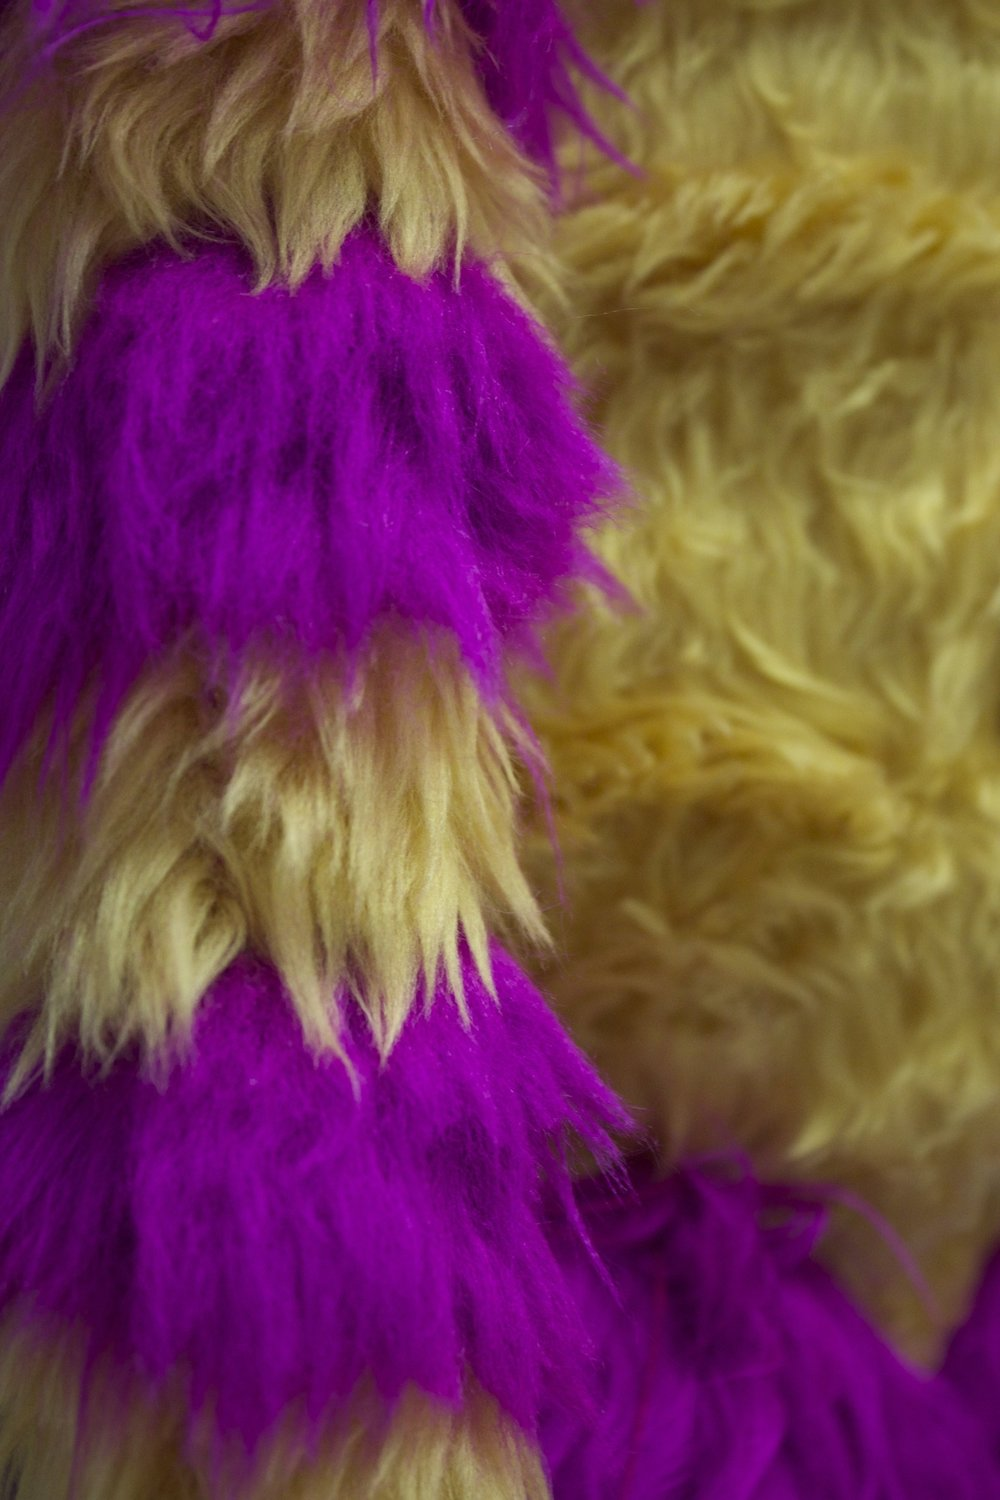 Furring Process